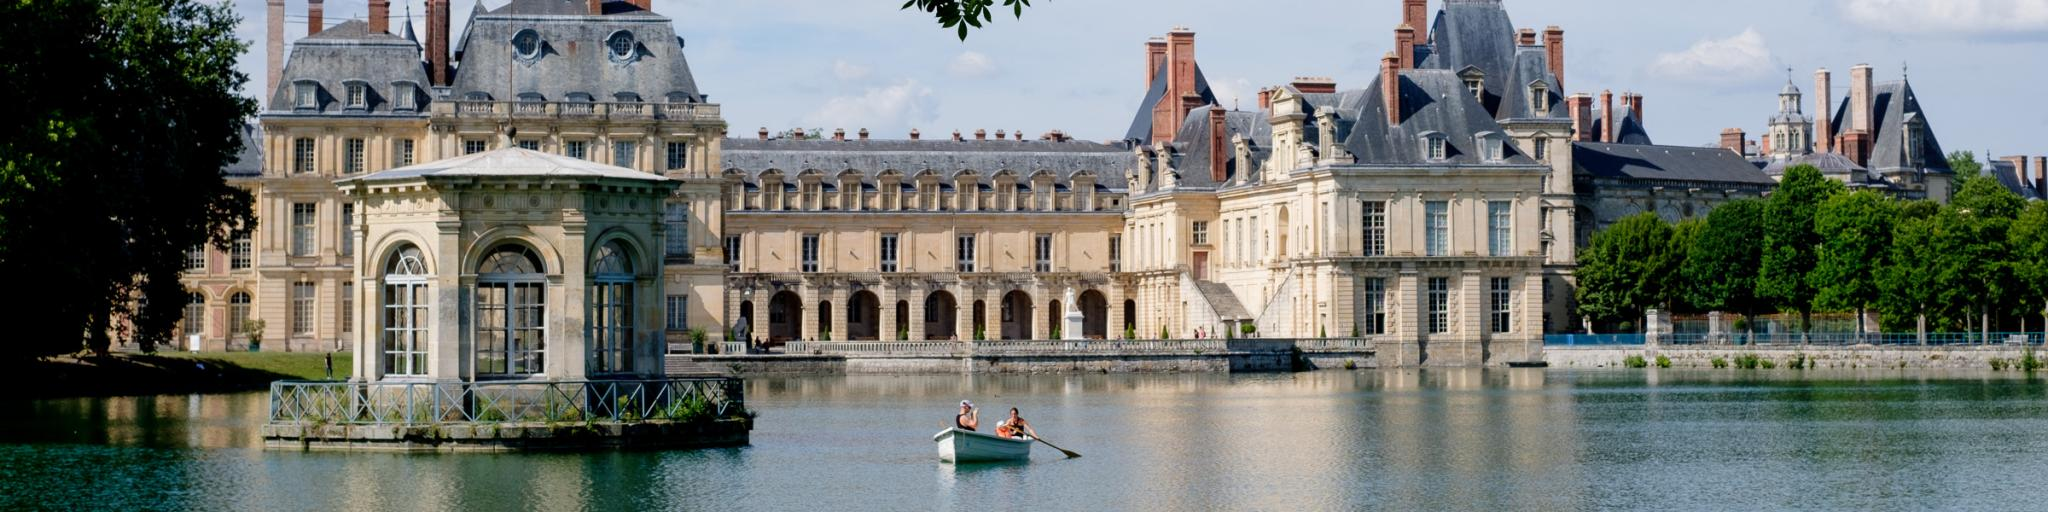 Rowers in the carp pond at Chateau de Fontainebleau